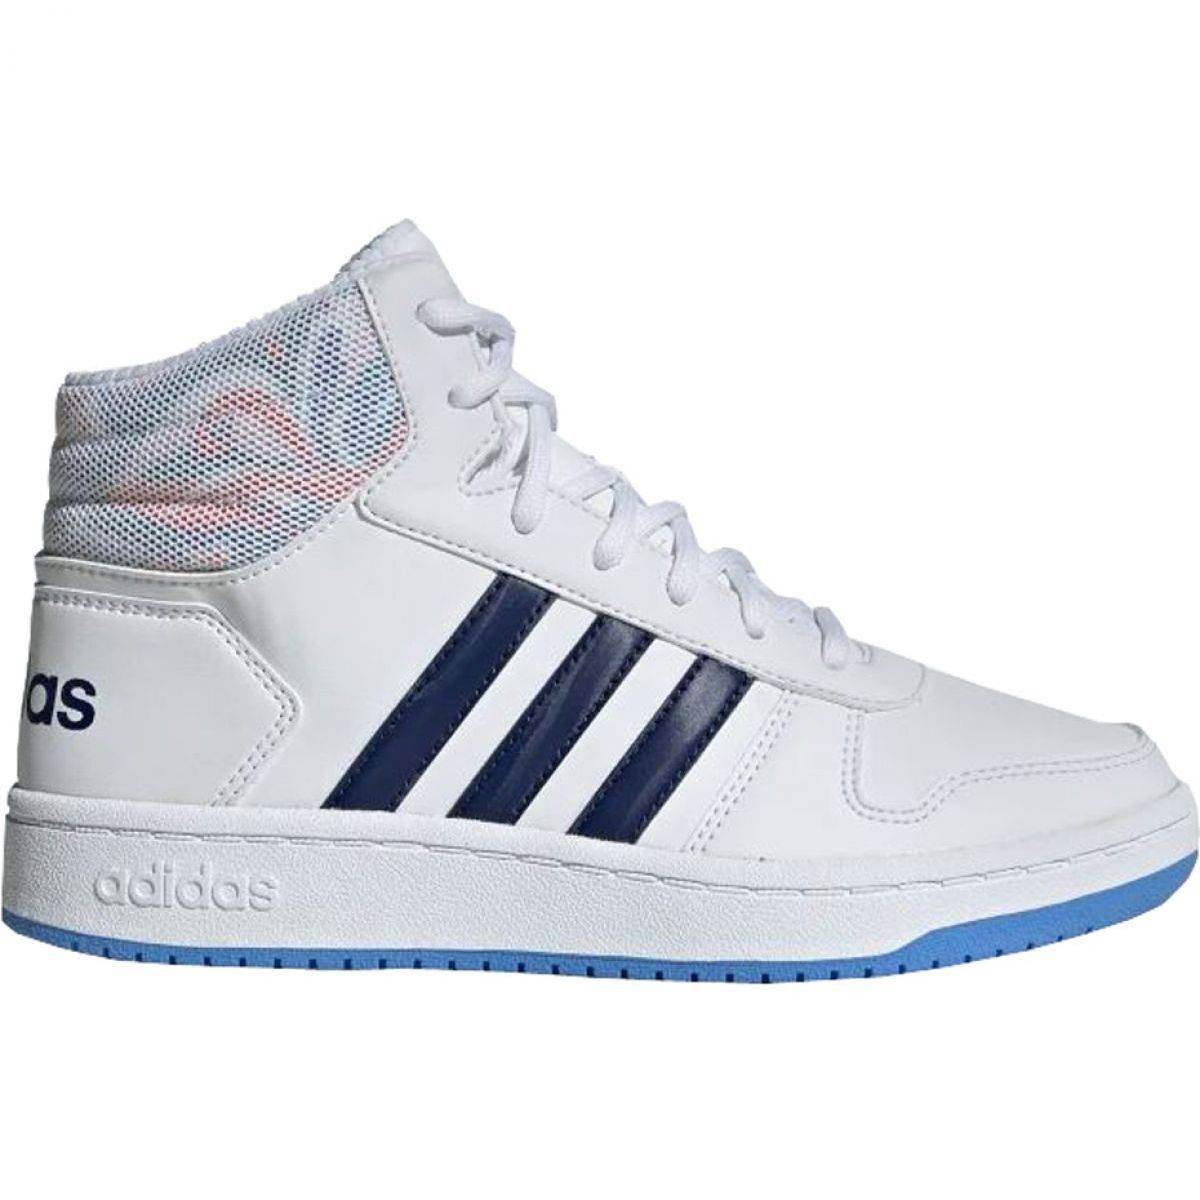 Buty Adidas Hoops Mid 2 0 Jr Ee8546 Biale Kid Shoes Childrens Shoes Adidas